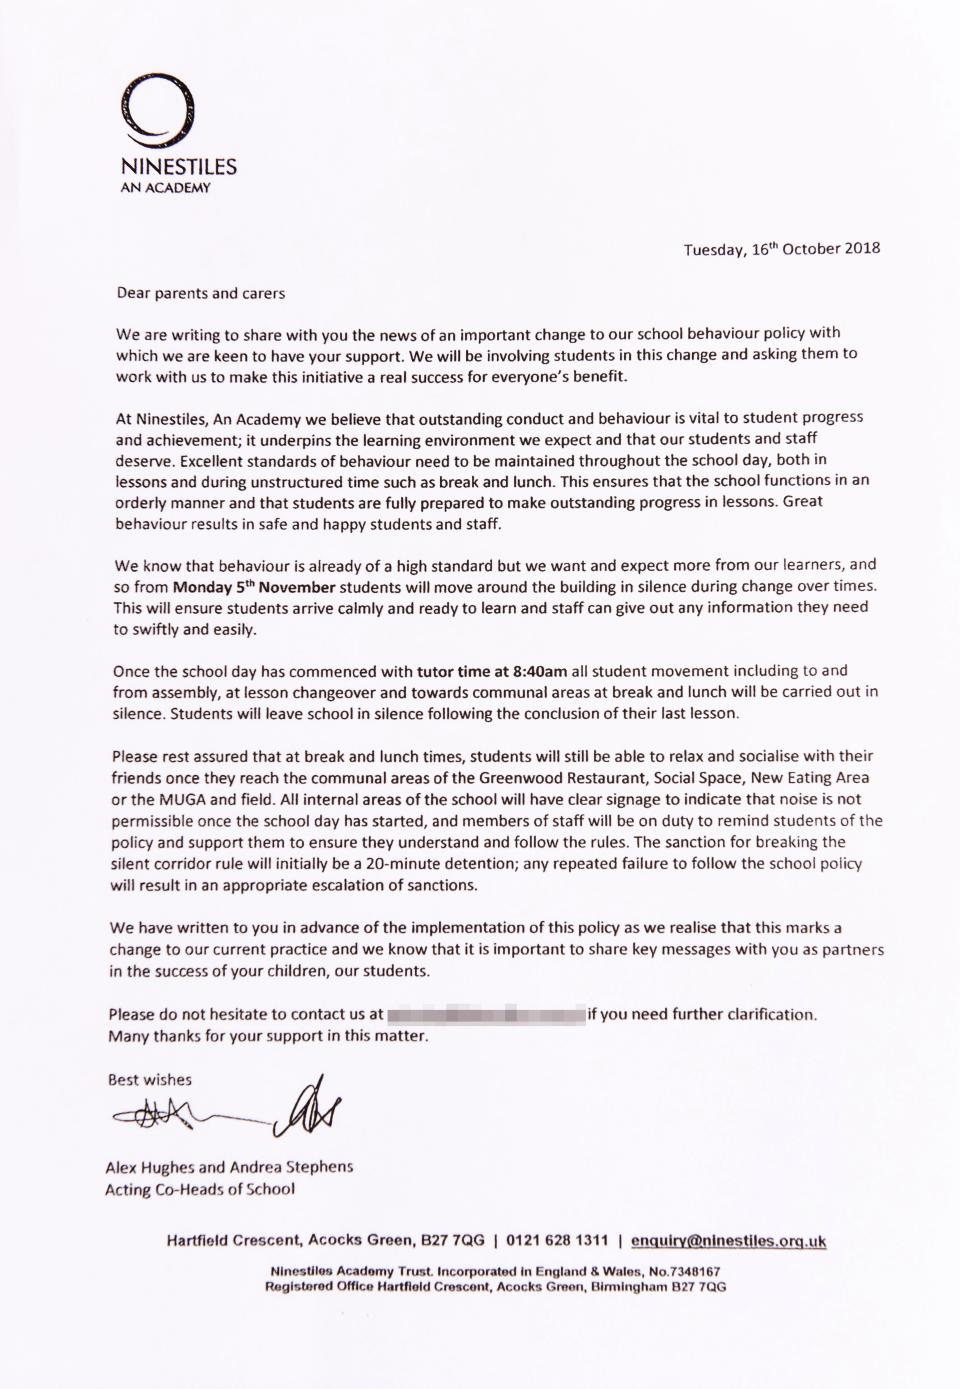 The letter explaining the school's 'no talking policy'. Credit: Mercury Press